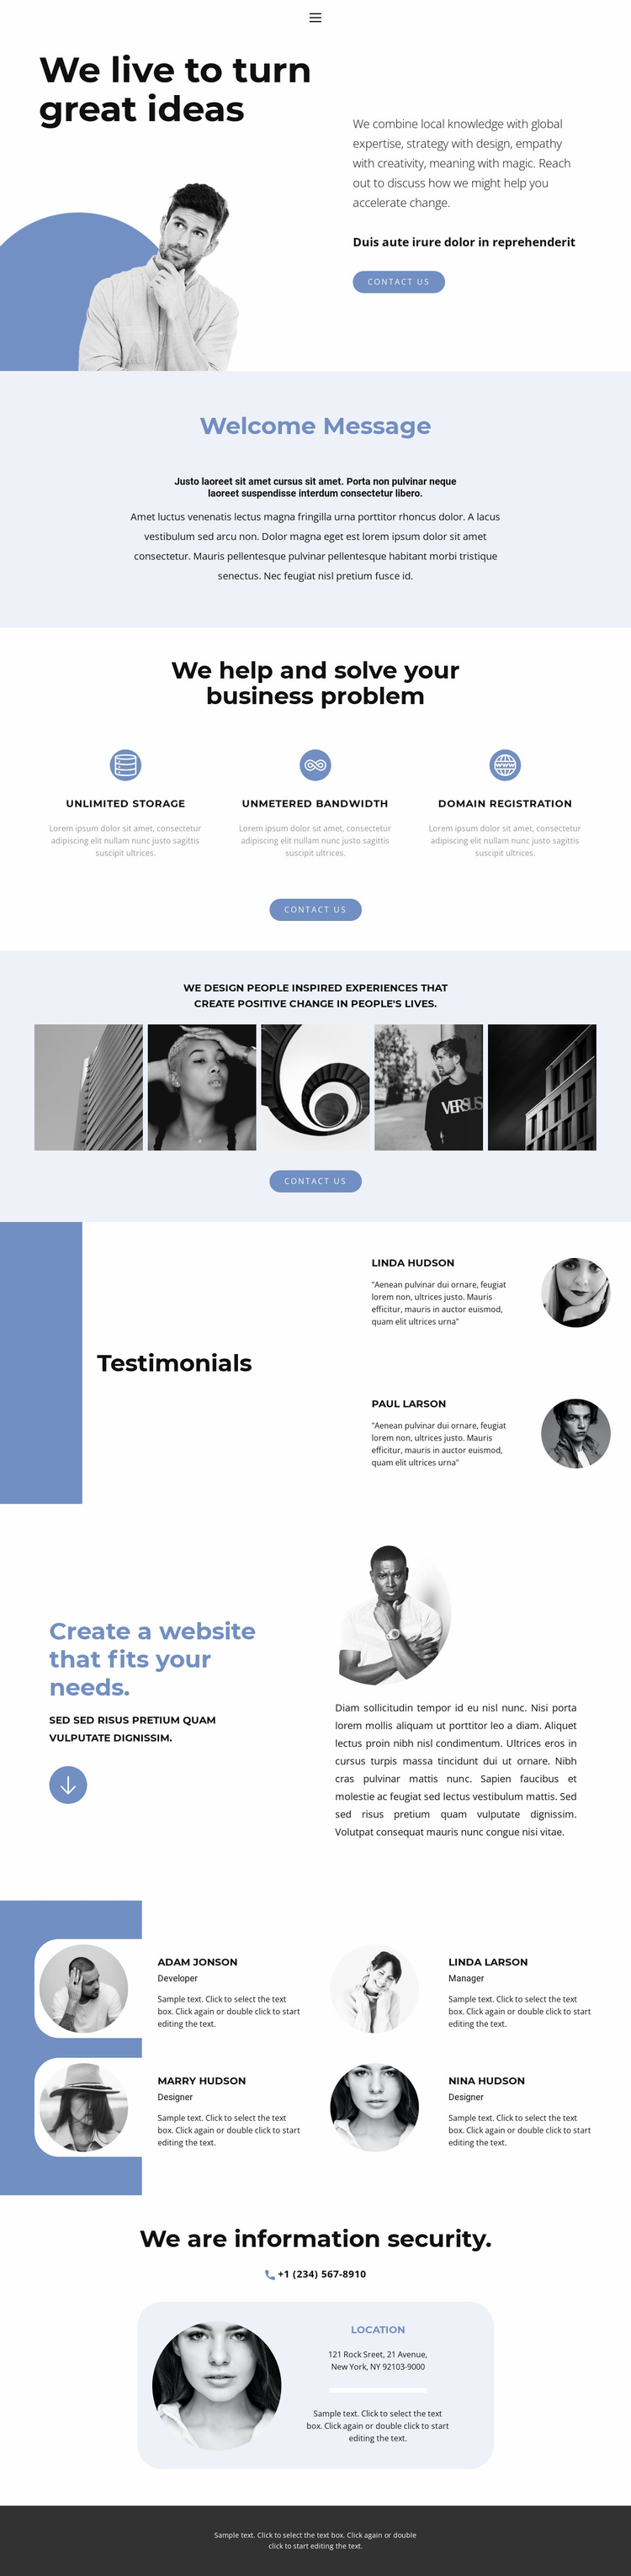 The embodiment of bold ideas Website Template